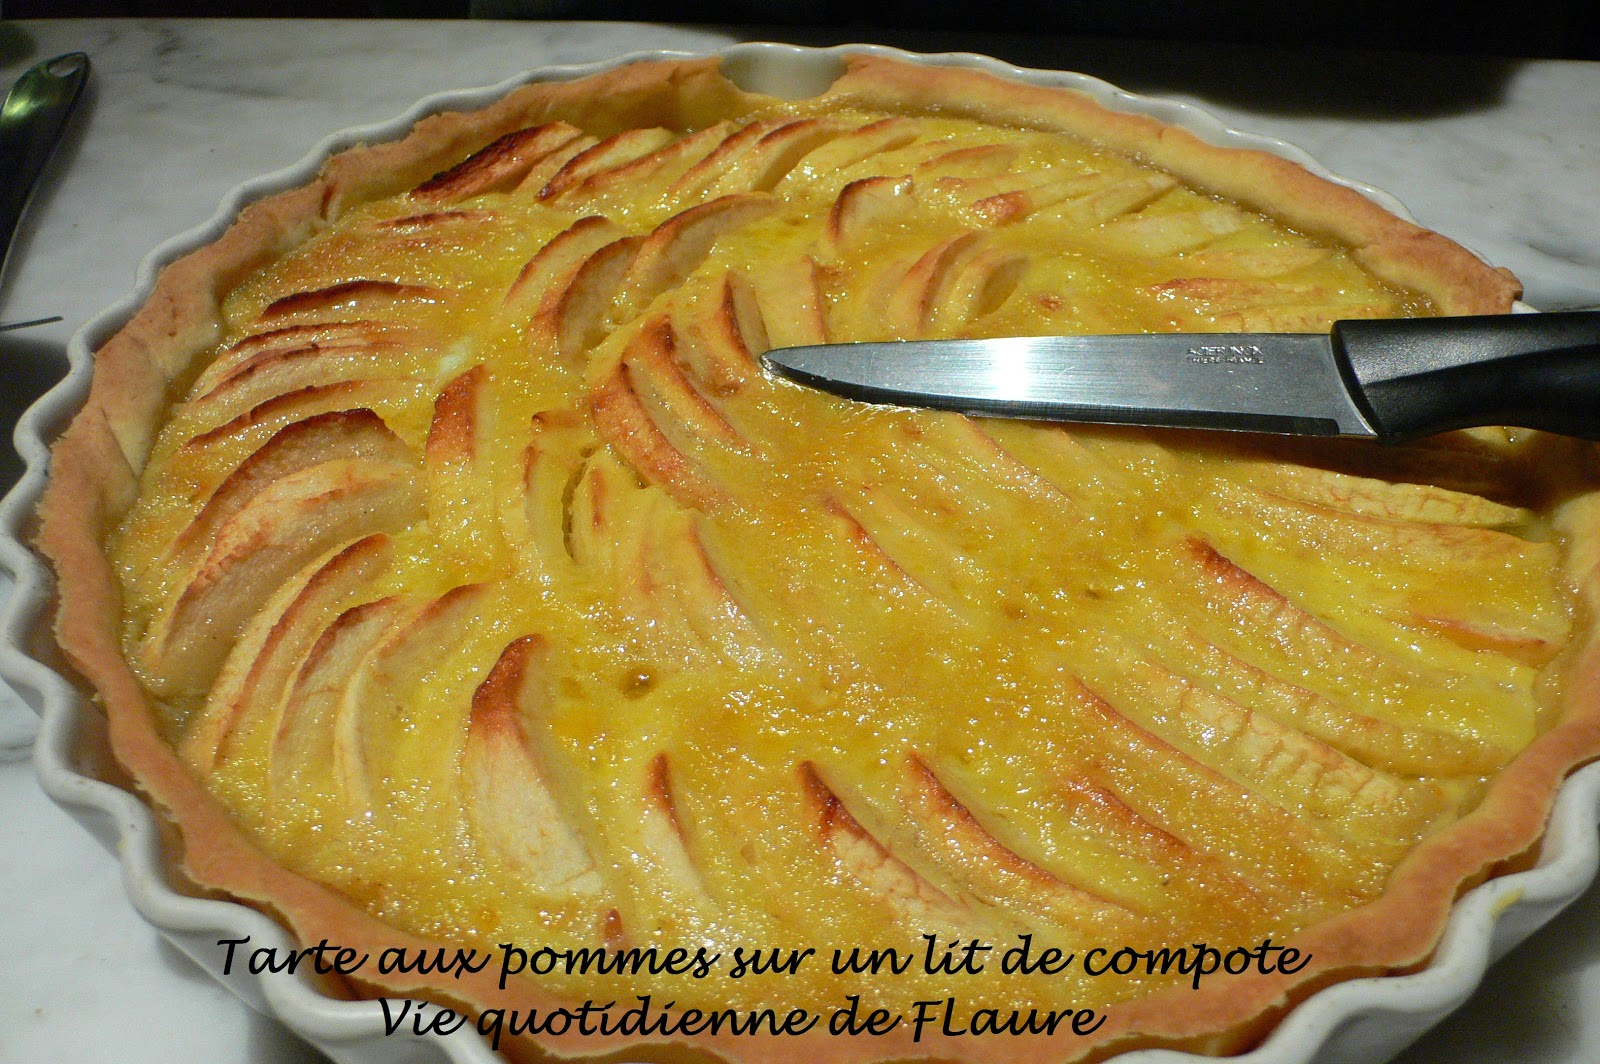 tarte aux pommes sur un lit de compote blogs de cuisine. Black Bedroom Furniture Sets. Home Design Ideas